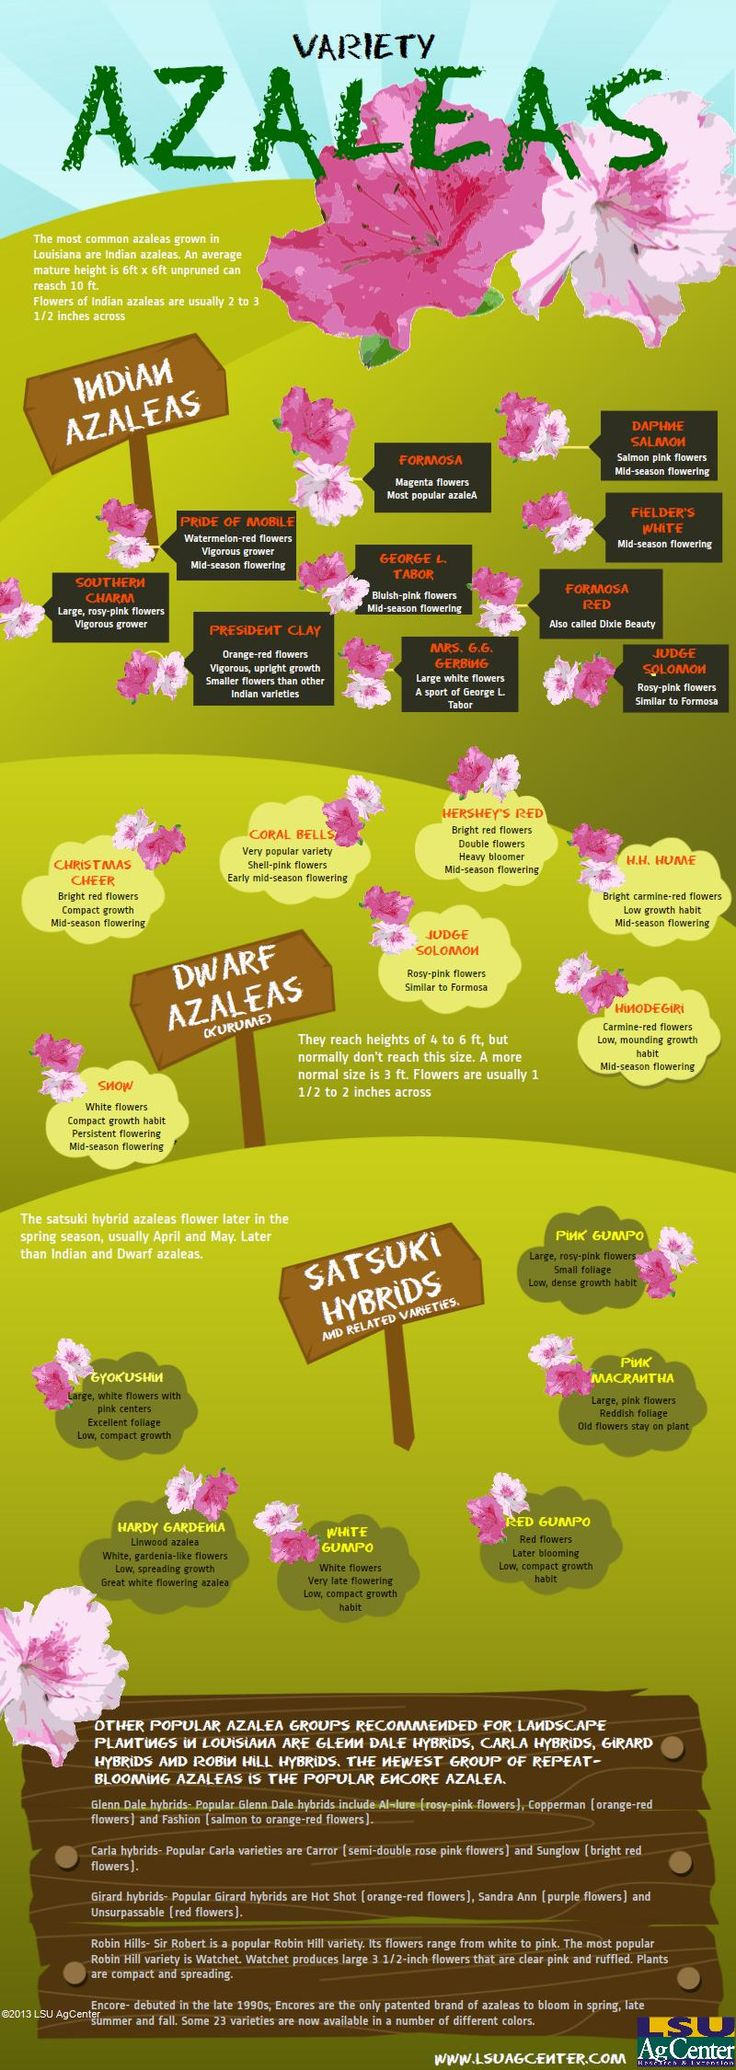 Variety of Azaleas- Azaleas, the major ornamental plants in Louisiana's residential and commercial landscapes, are available in many flower colors, growth habits and foliage characteristics. This #infograph coveries the various varieties for Louisiana gardens. Created with @Piktochart